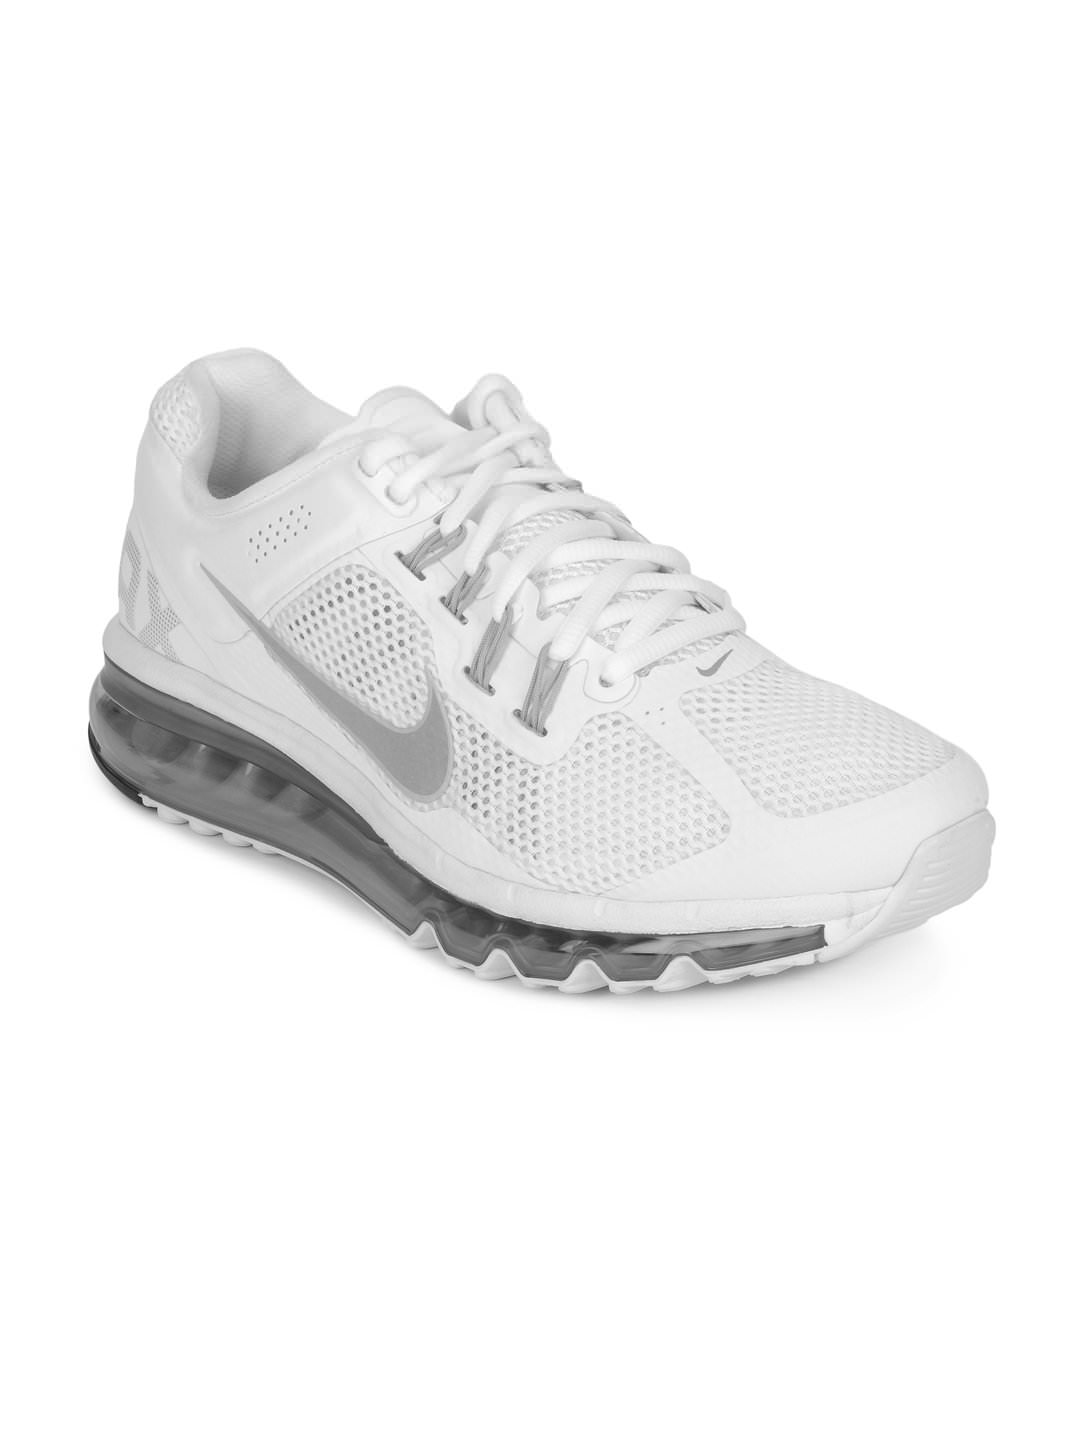 Fashion: New Nike Shoes For Boys In 2013